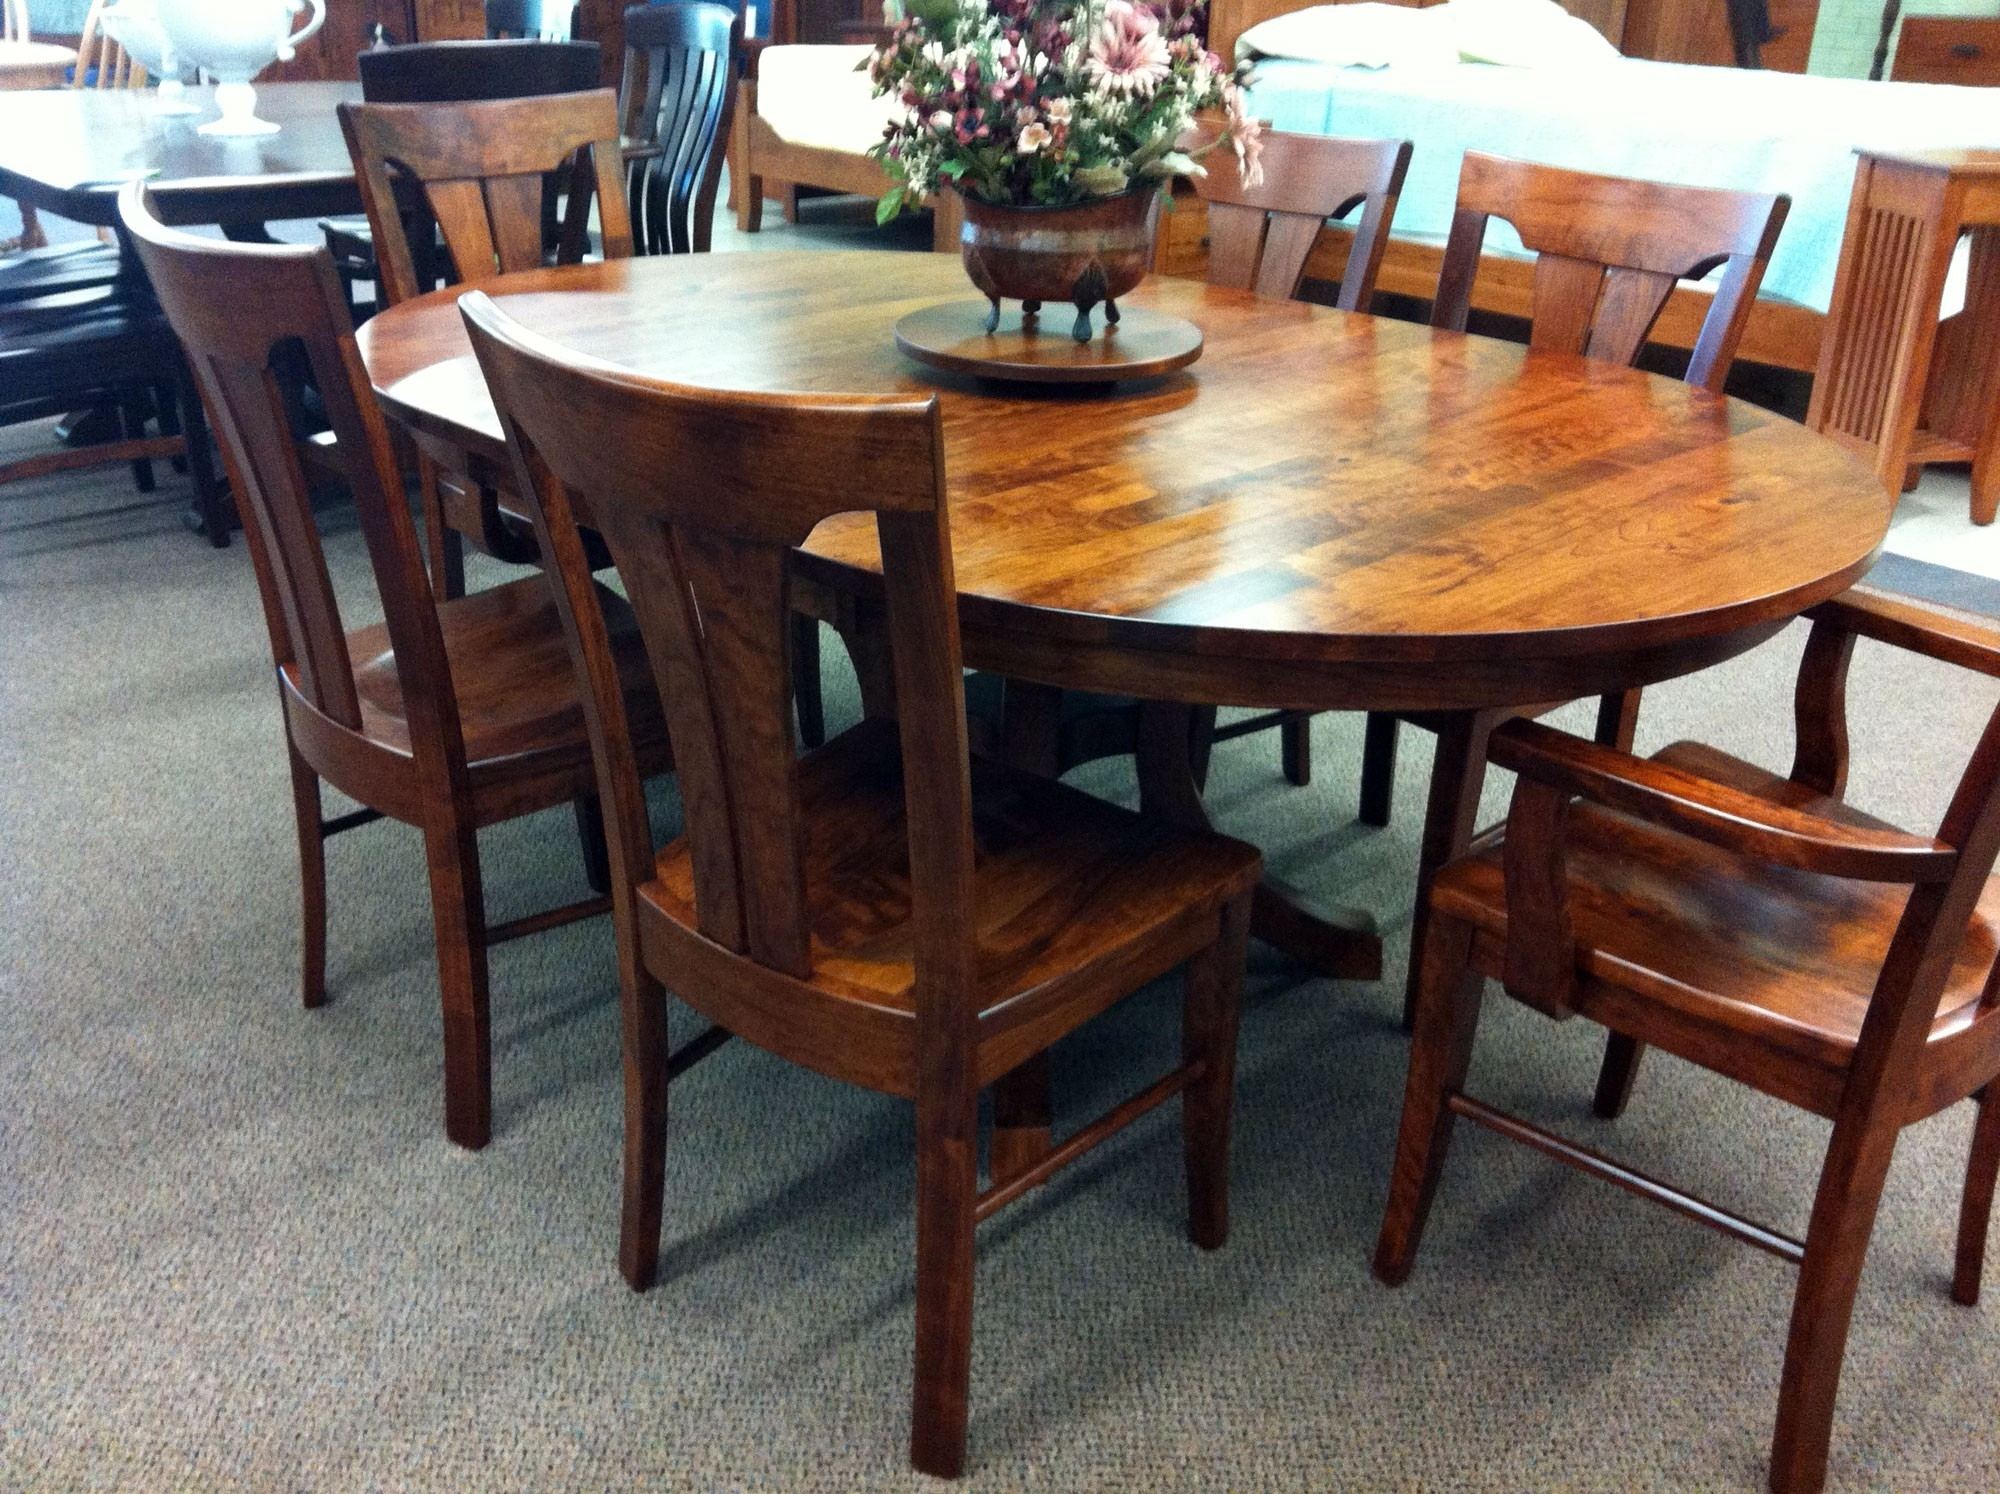 Widely Used Antique Oval Dining Tables For Sale Beautiful Art Deco Round In Big Dining Tables For Sale (View 10 of 25)